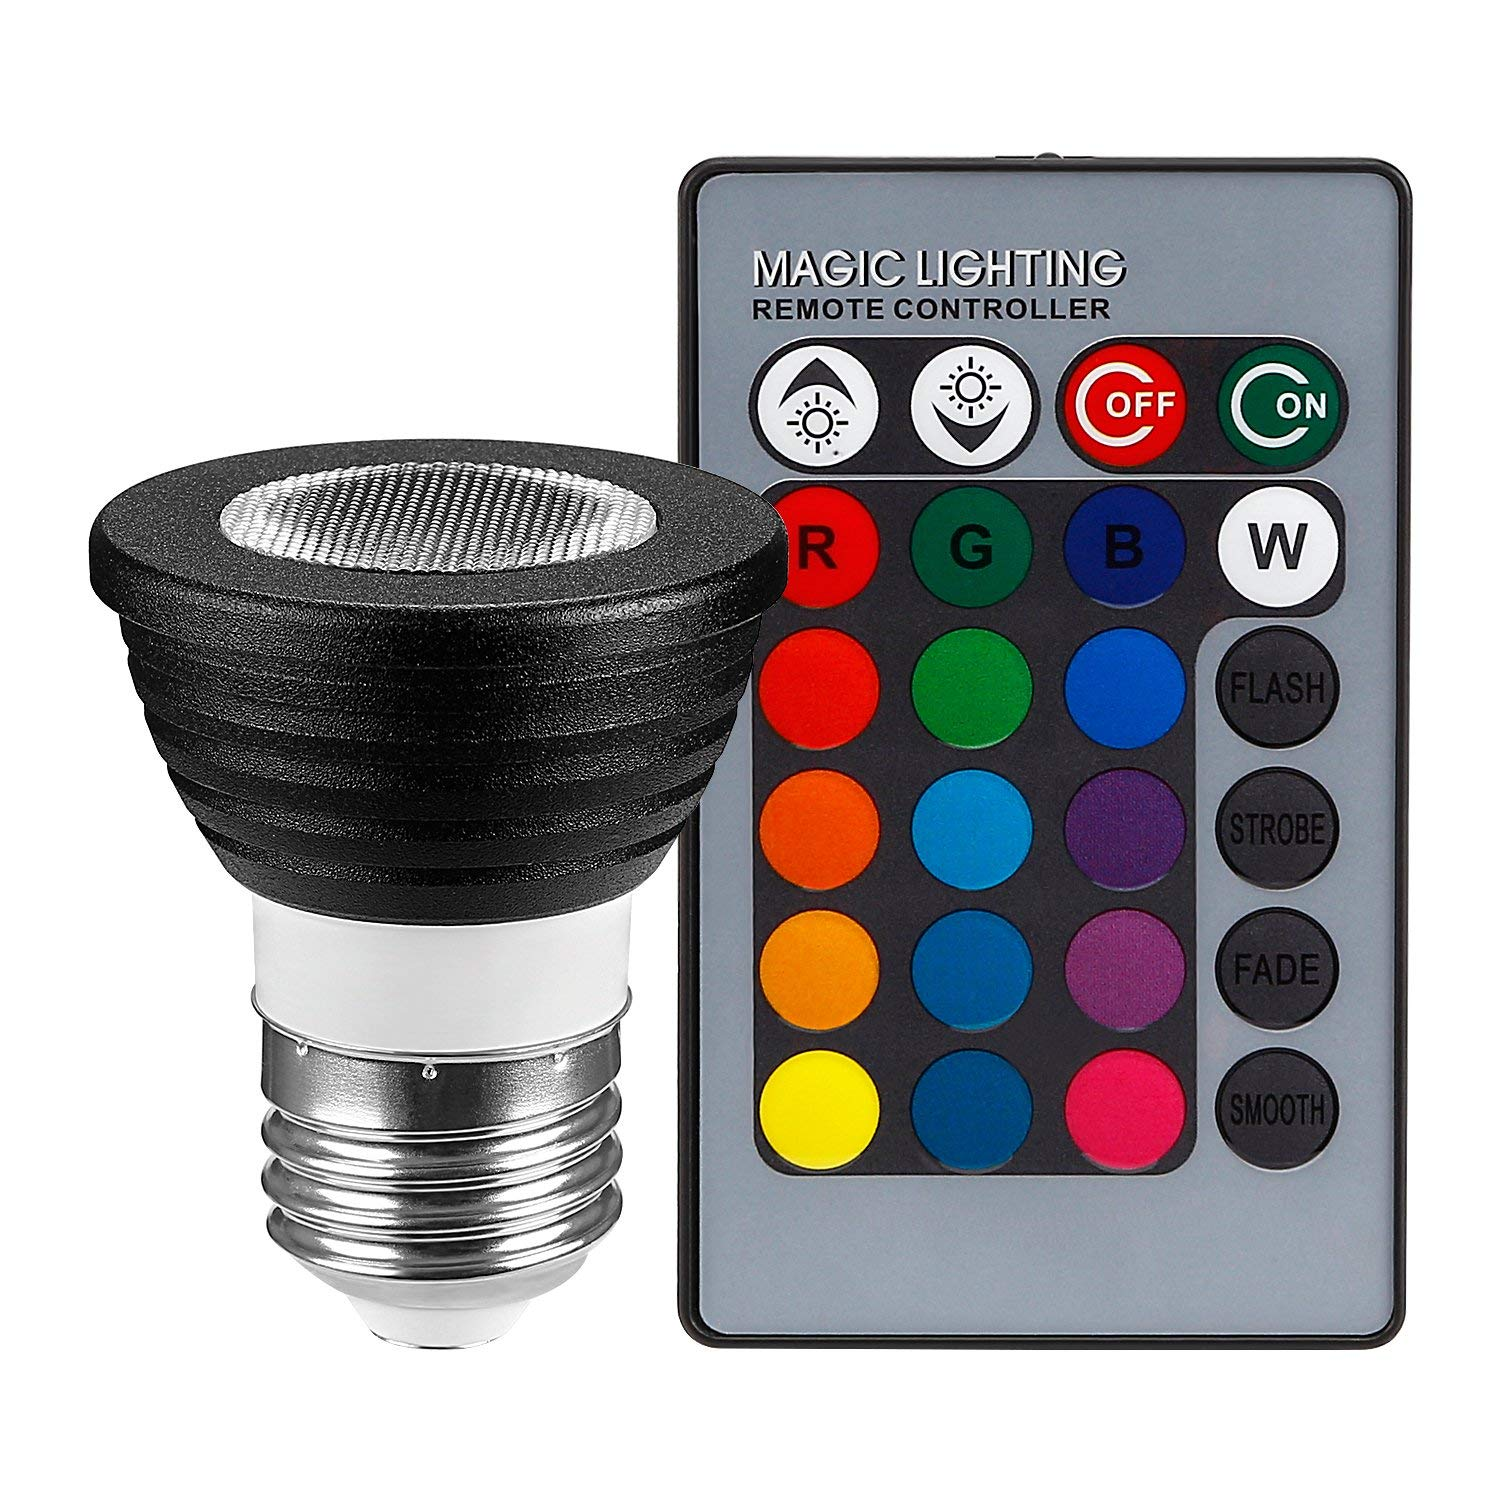 3-in-1 RGB Multi Color LED E26 Spotlight Kit 45 Degree Beam Angle with 24-Key IR Remote Control and Memory Function, AC 85V-265V 3W Color Changing LED Bulb, Bead Surface Lens - Black